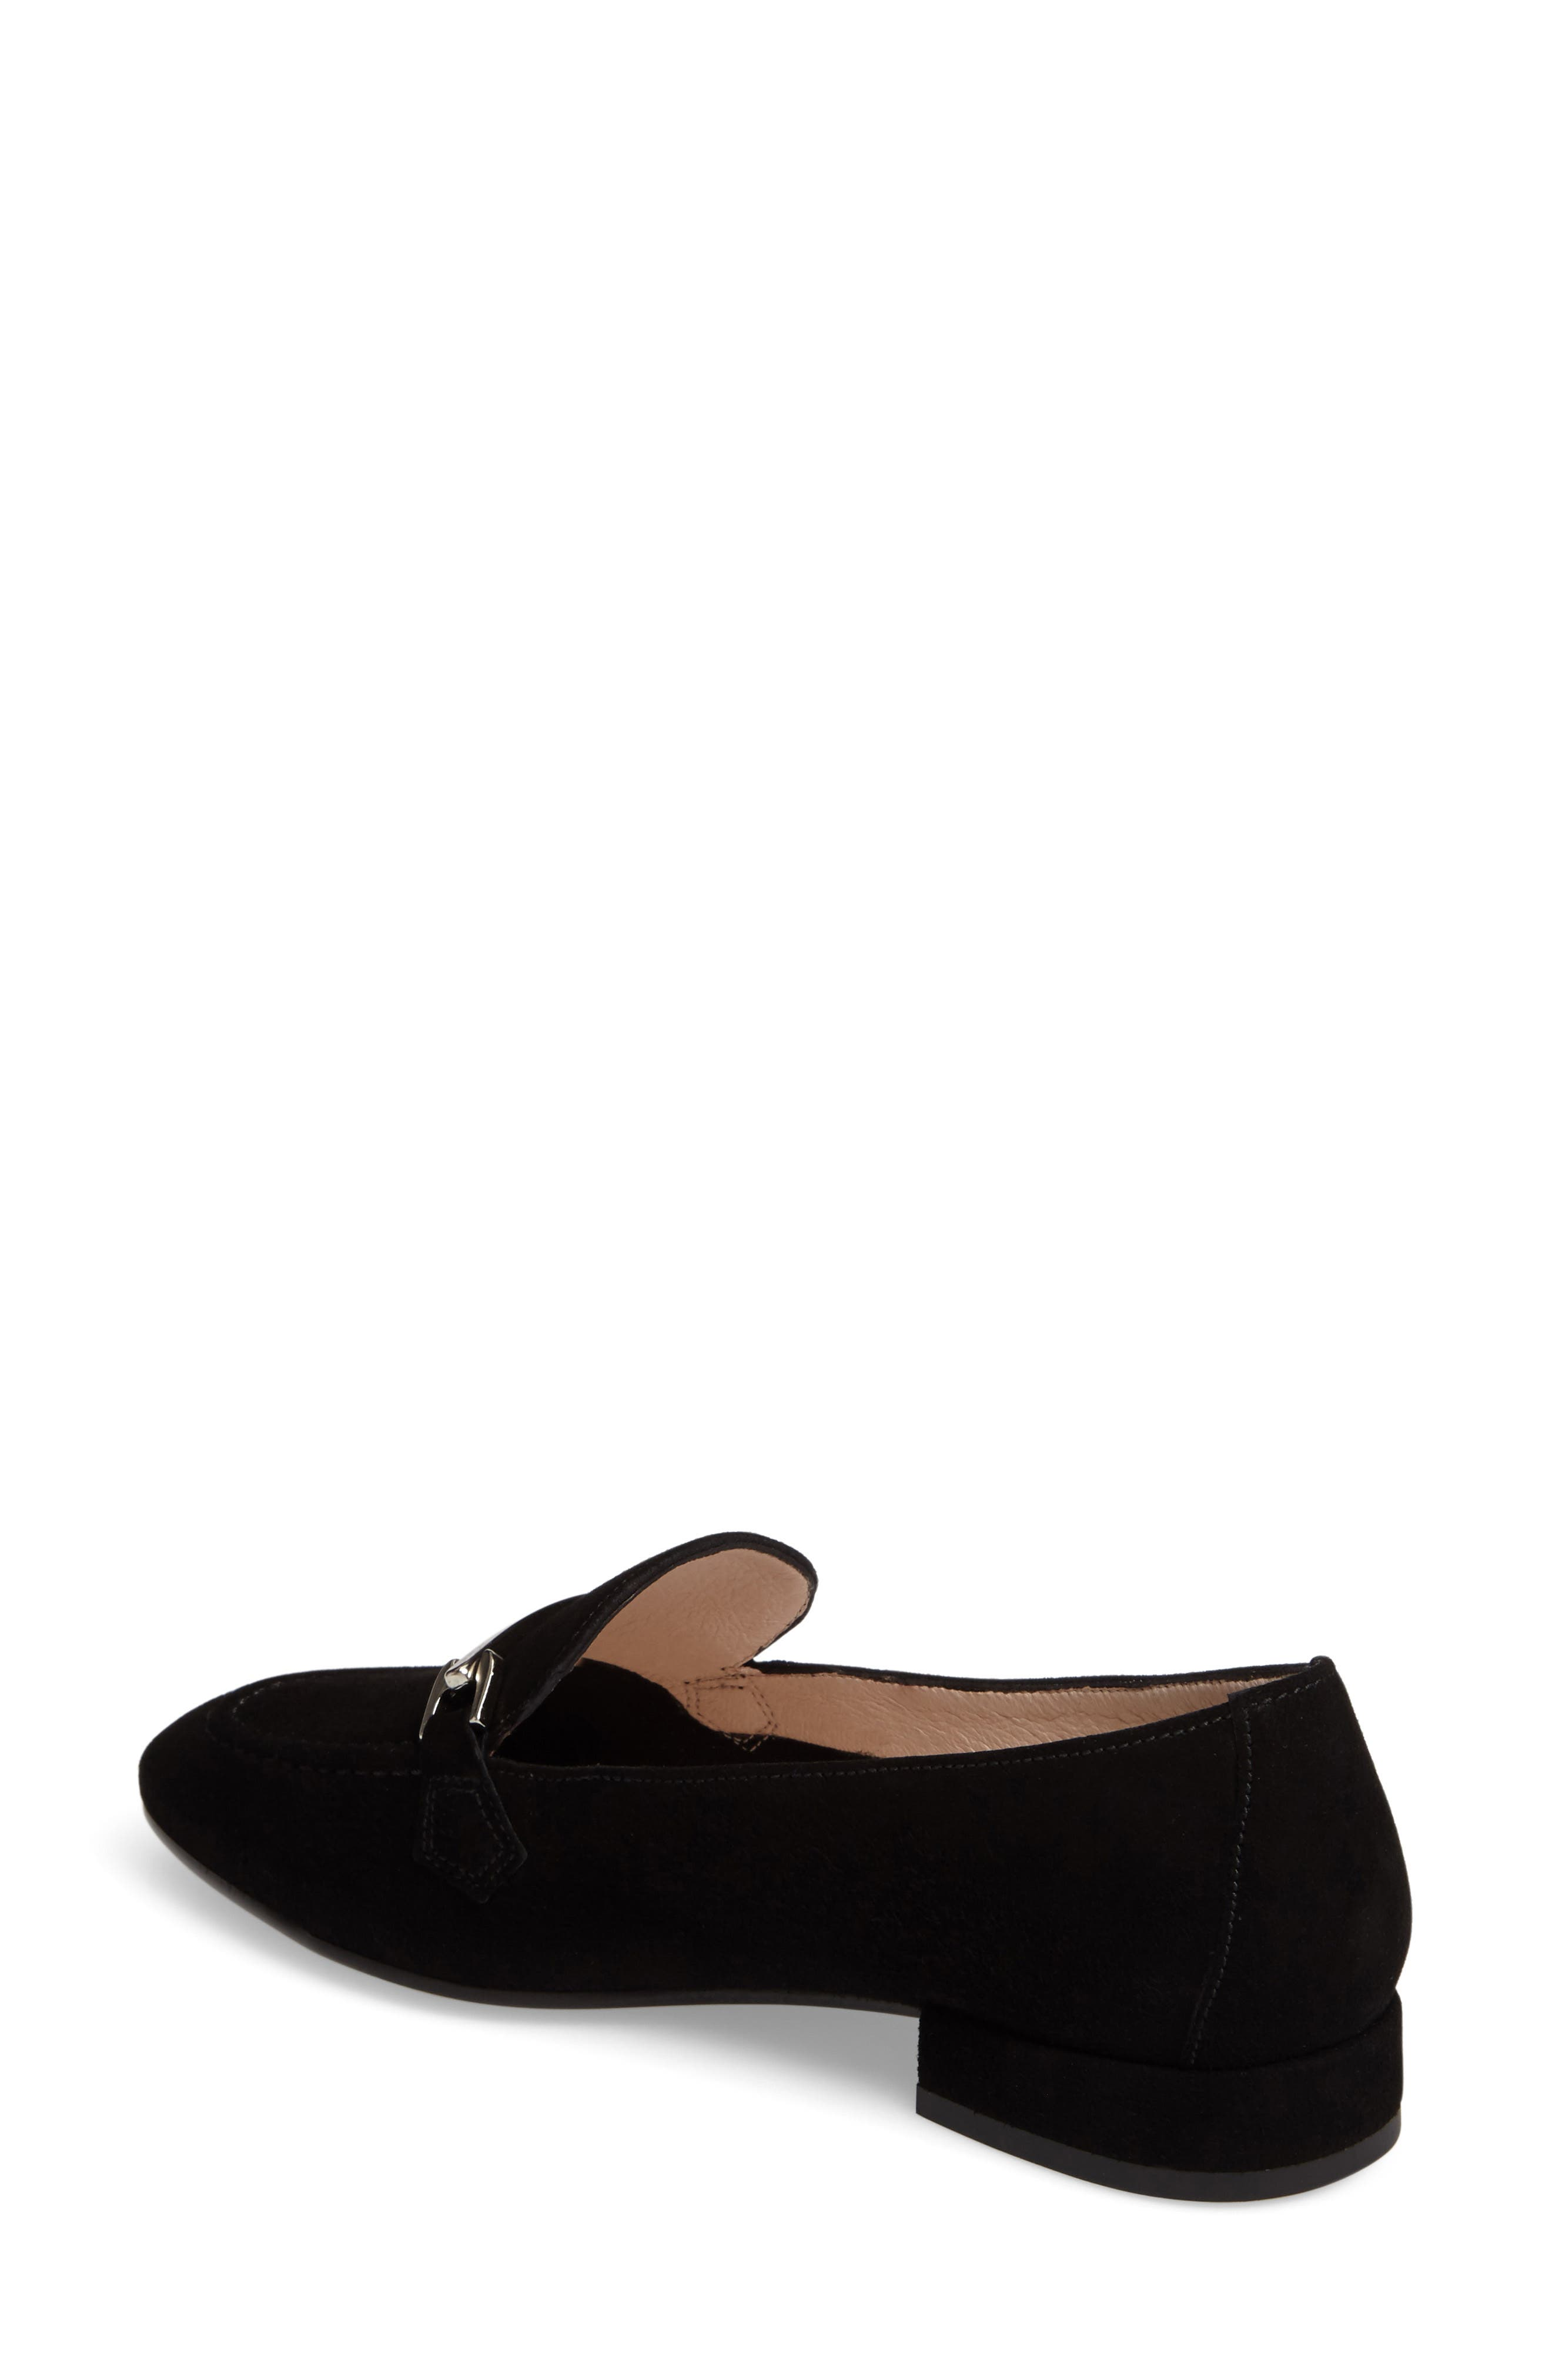 Evelyn Loafer,                             Alternate thumbnail 2, color,                             BLACK FABRIC